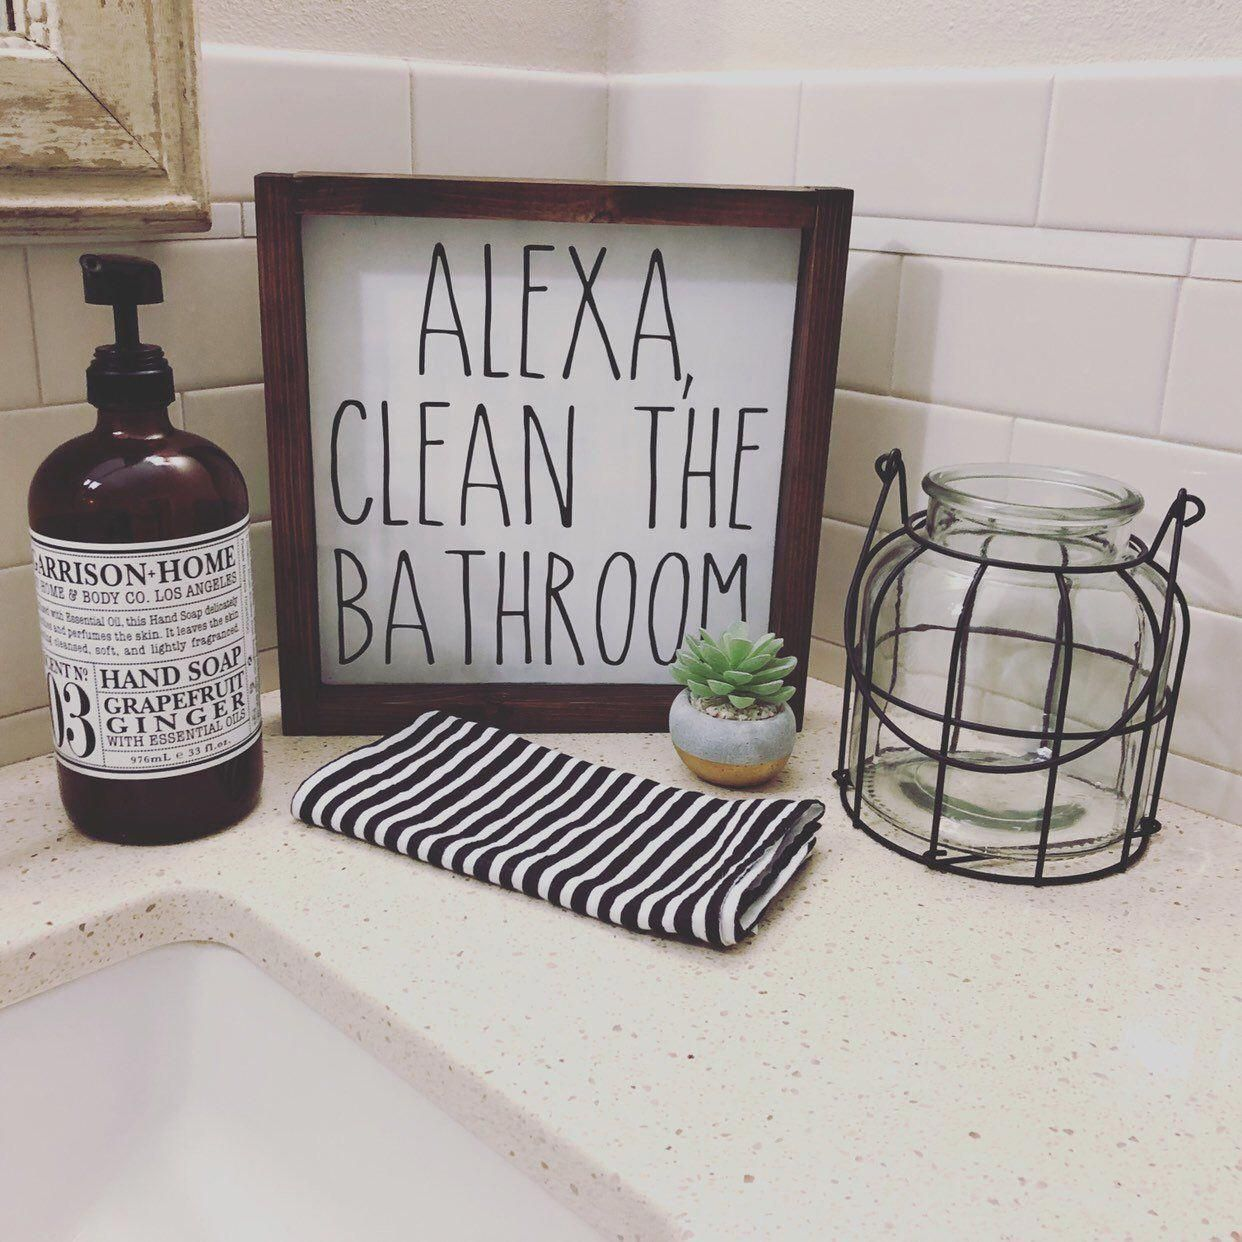 Alexa Clean the Bathroom Farmhouse Style Wood Sign Framed | Etsy